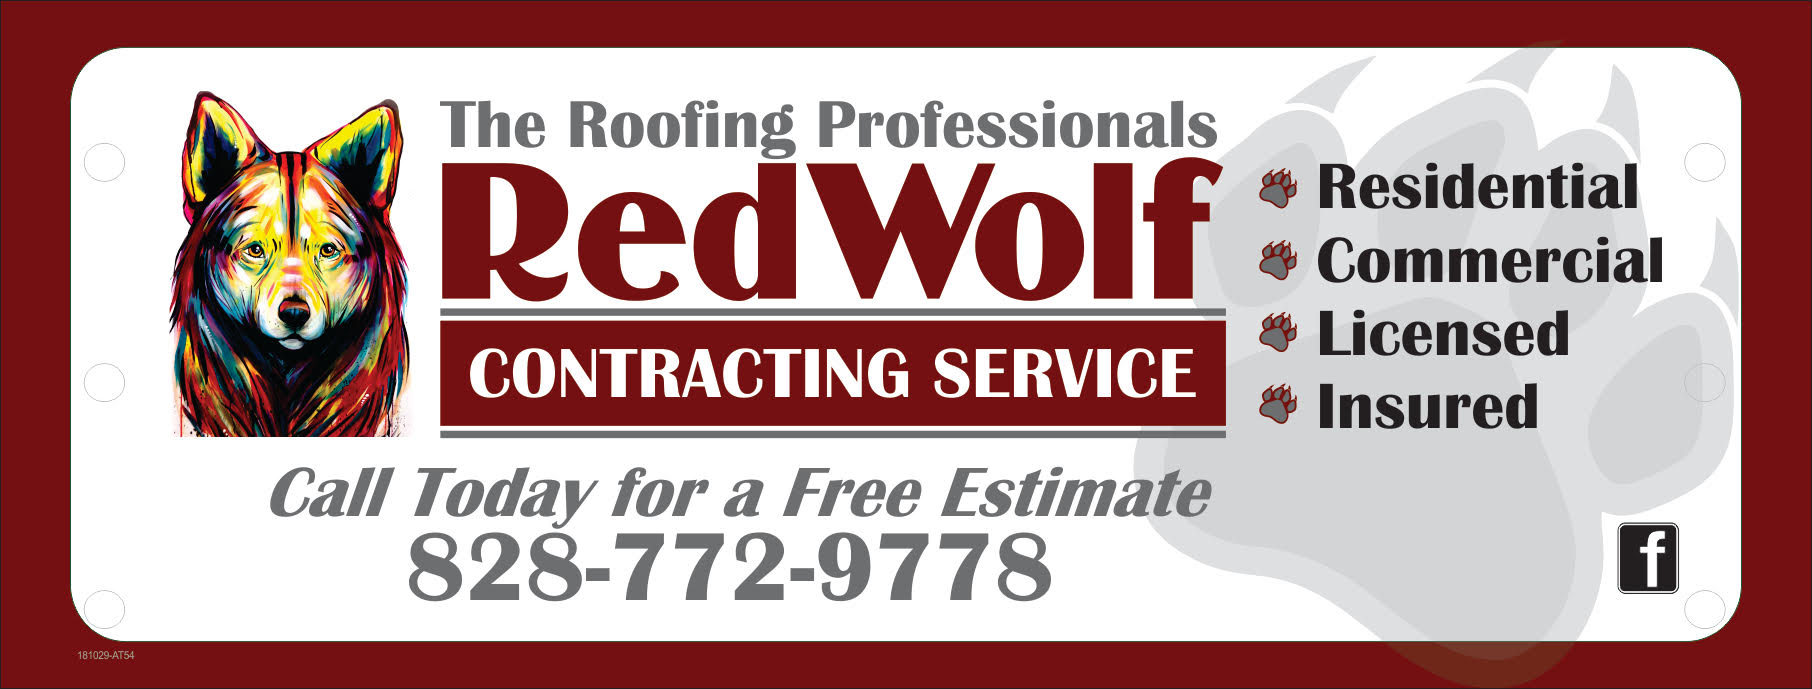 Looking for a quality roofing contractor to take care of your roof repair or replacement?  Contact the team at RedWolf Contracting Service and get your free evaluation from WNC's Roofing Experts!  Call Matt (828)772-9778 the set up your free evaluation today or visit their website  www.nc-roofers.com